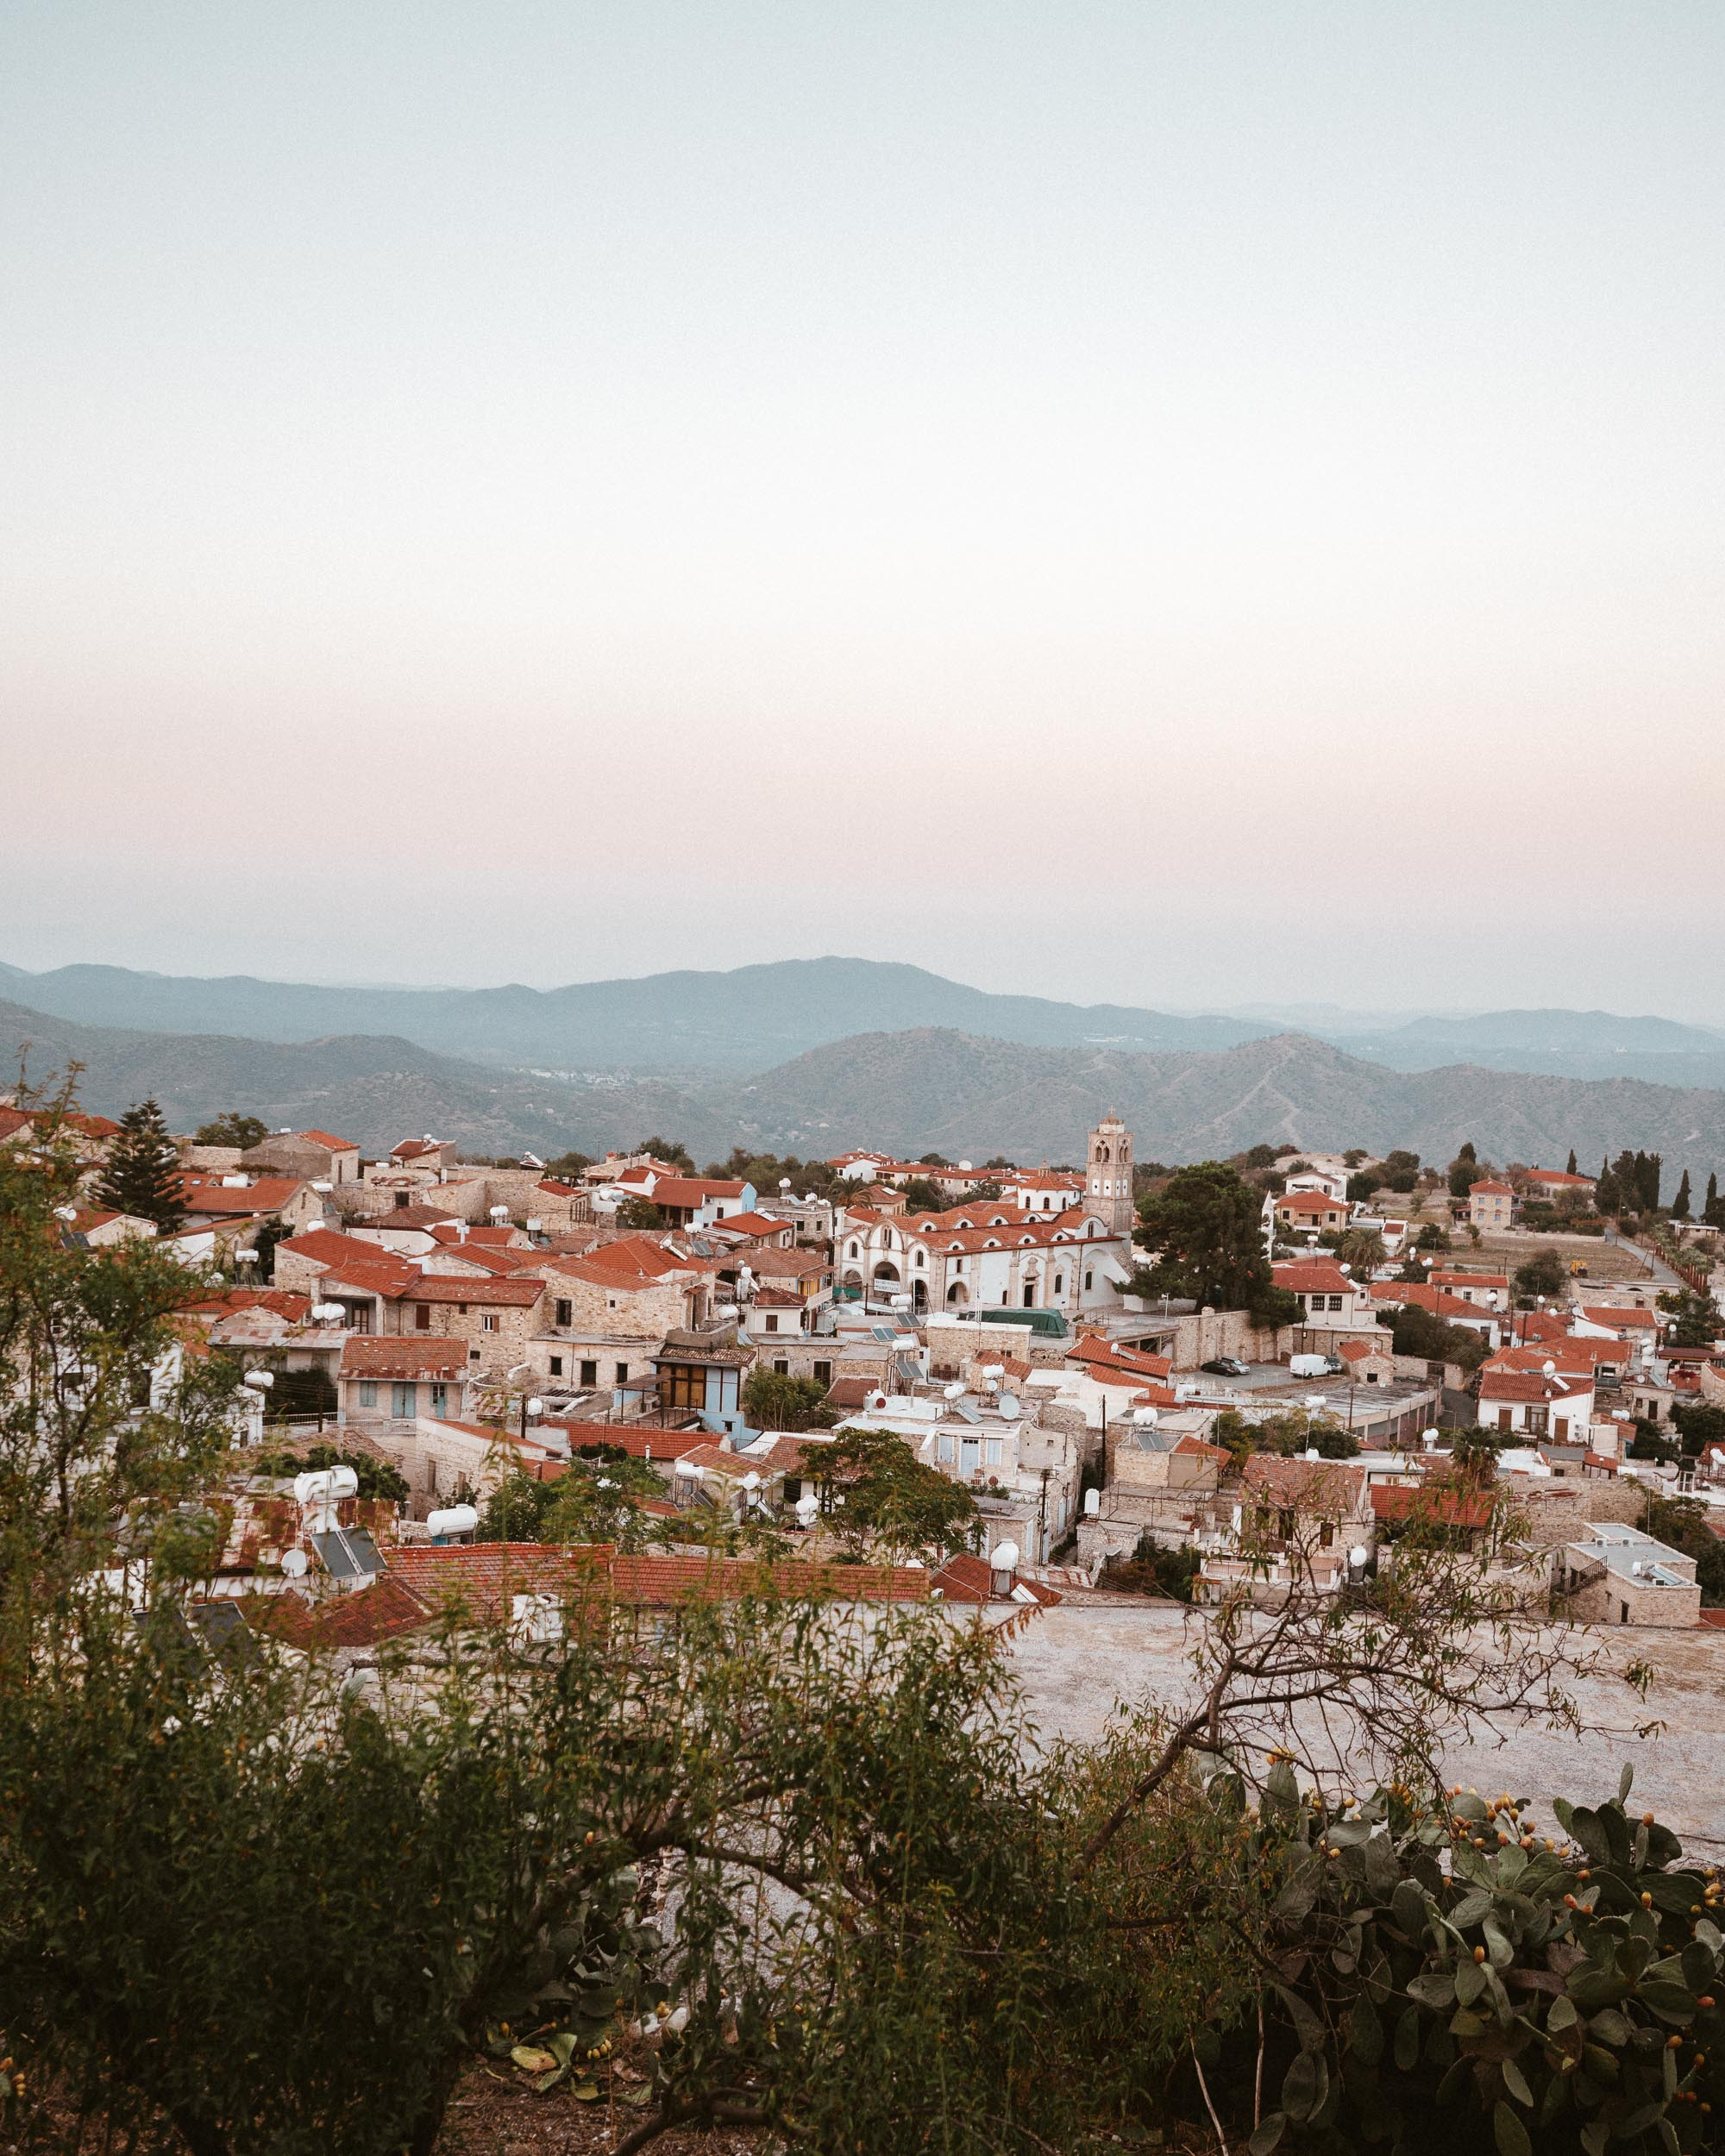 Sunset over omodos mountain town in Cyprus via @finduslost